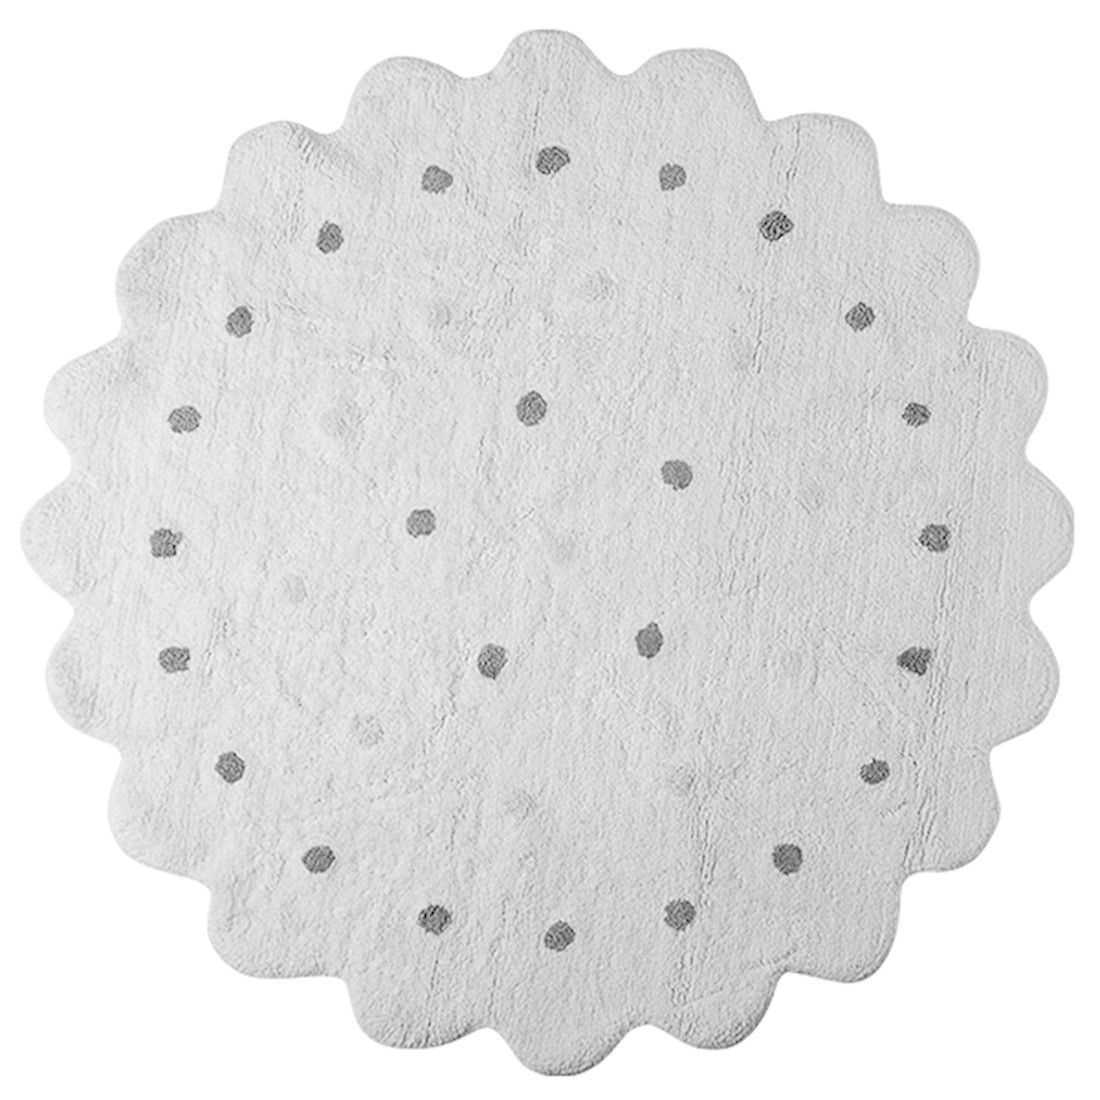 Tapete Lorena Canals Galletita Branco 140 cm